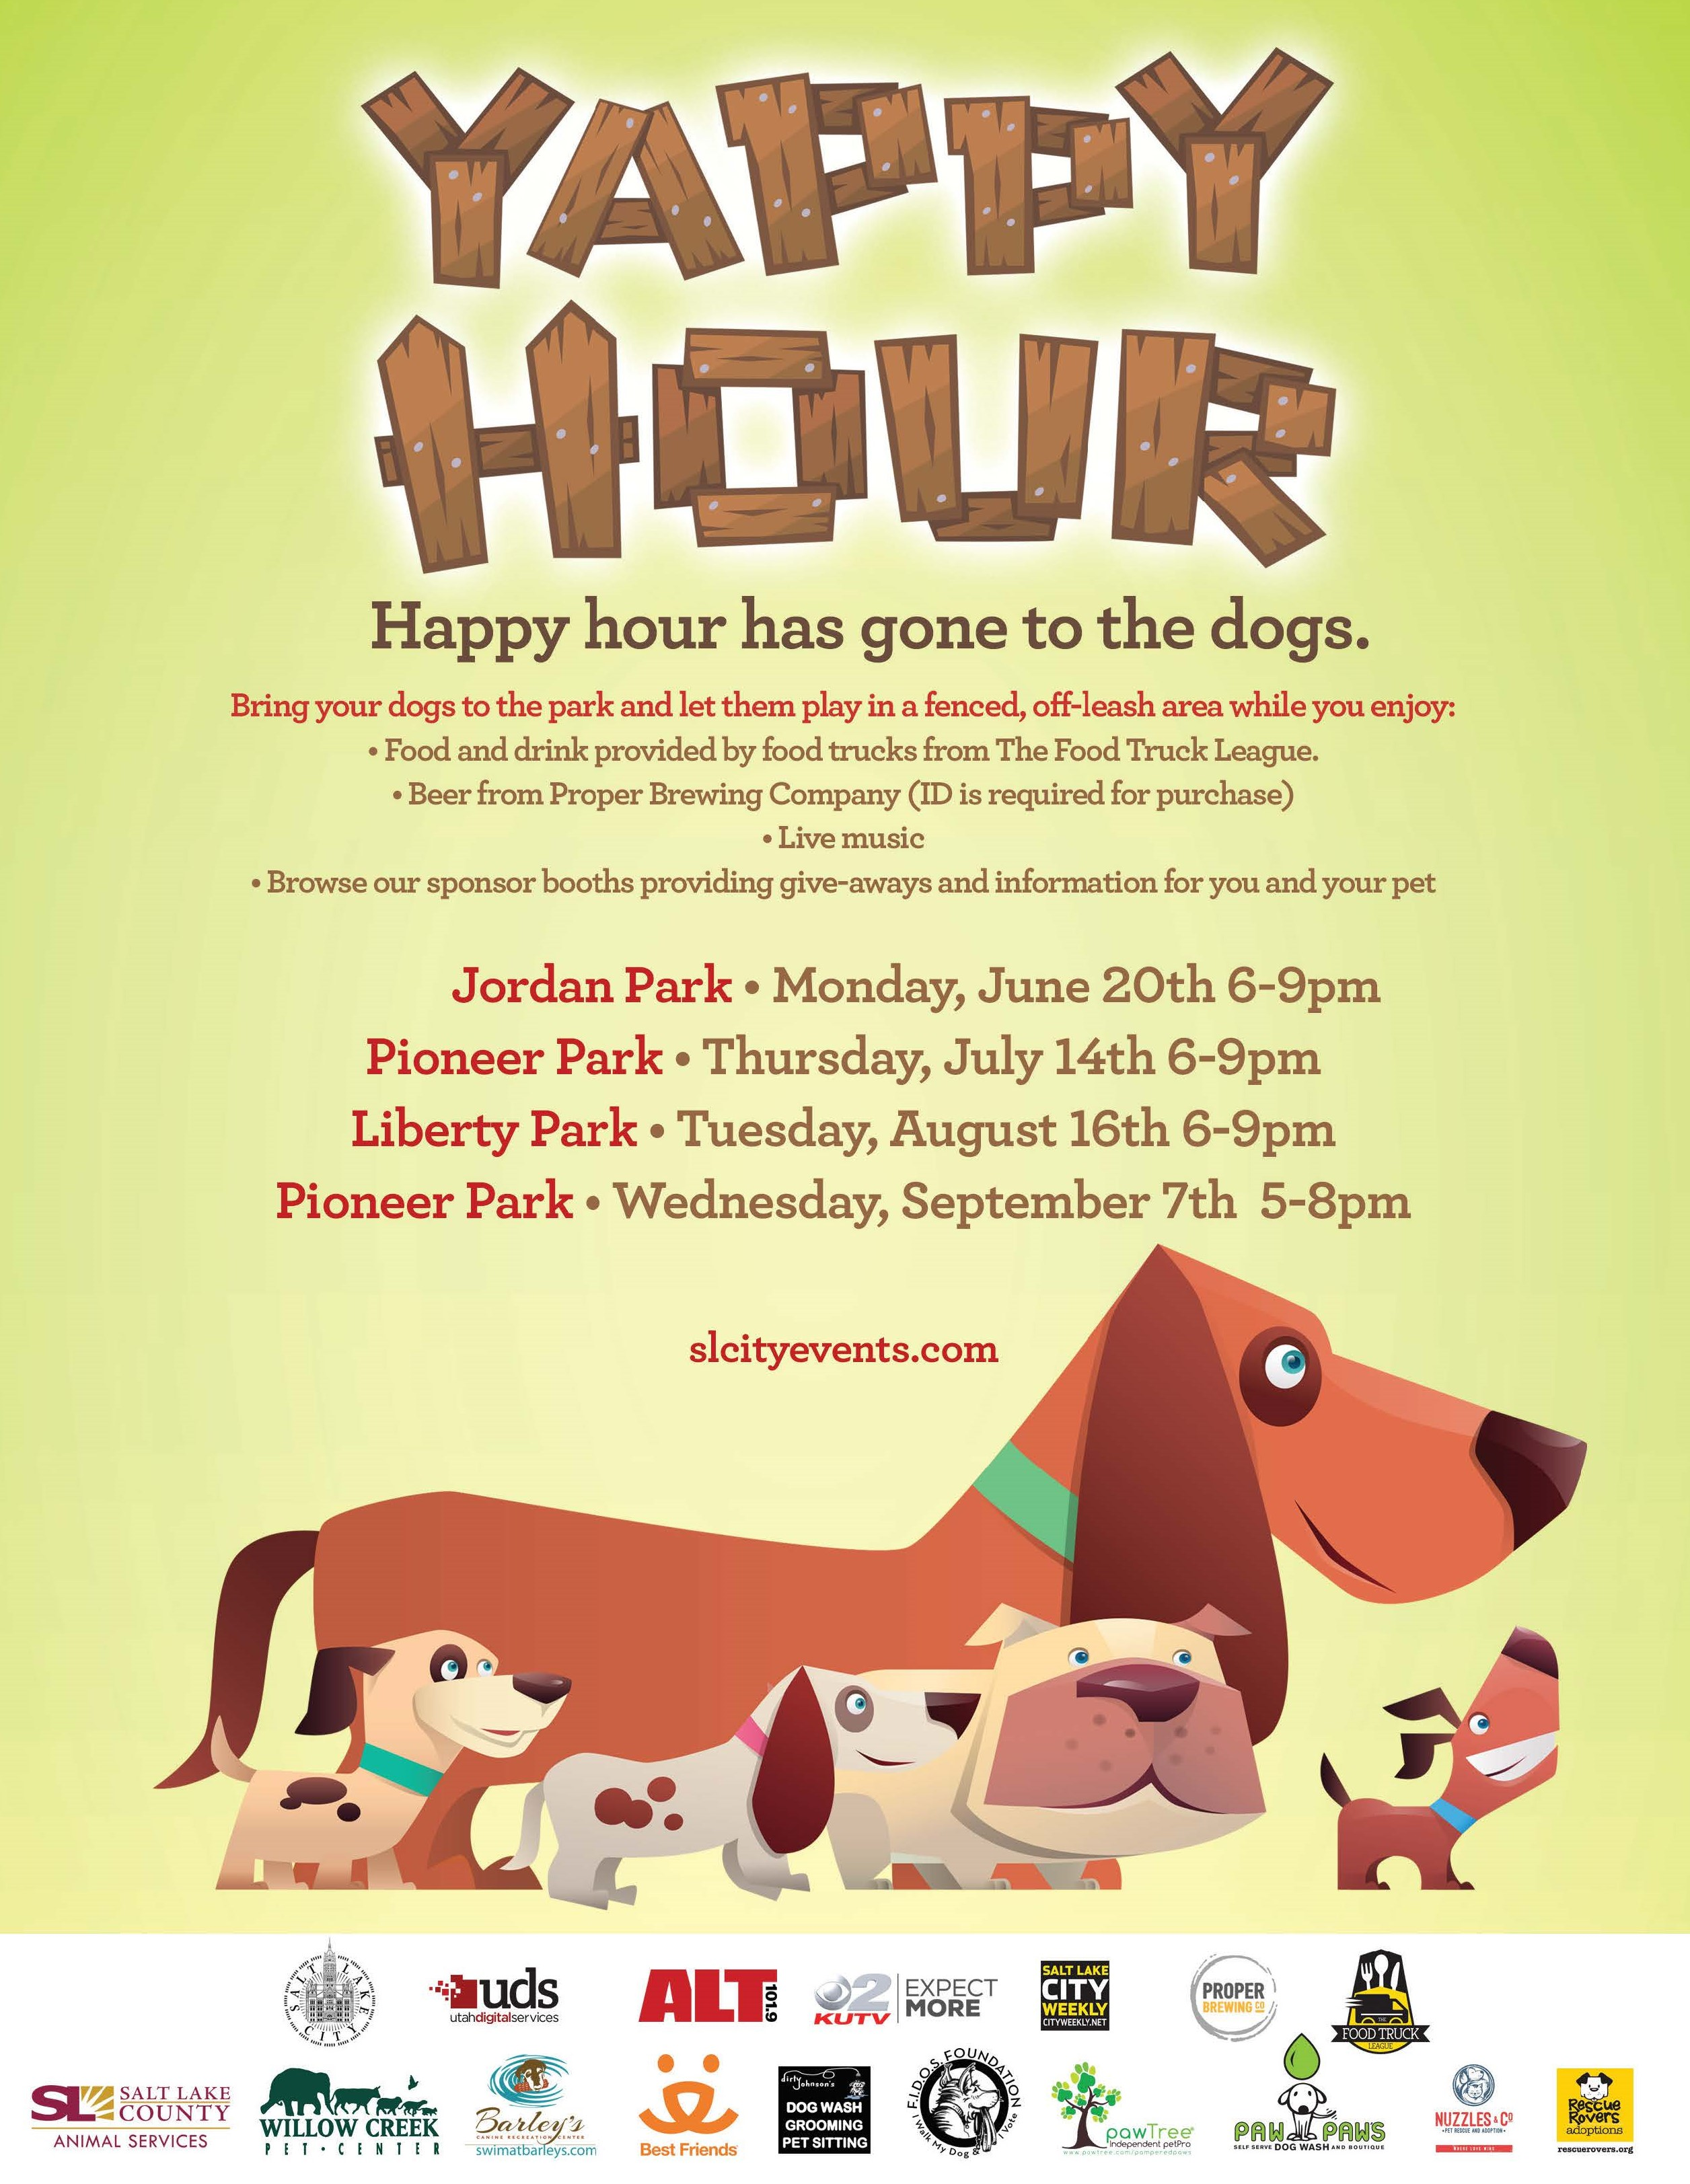 Yappy hour 2016 presented by salt lake city corporation yappy hour 2016 presented by salt lake city corporation nowplayingutah solutioingenieria Gallery